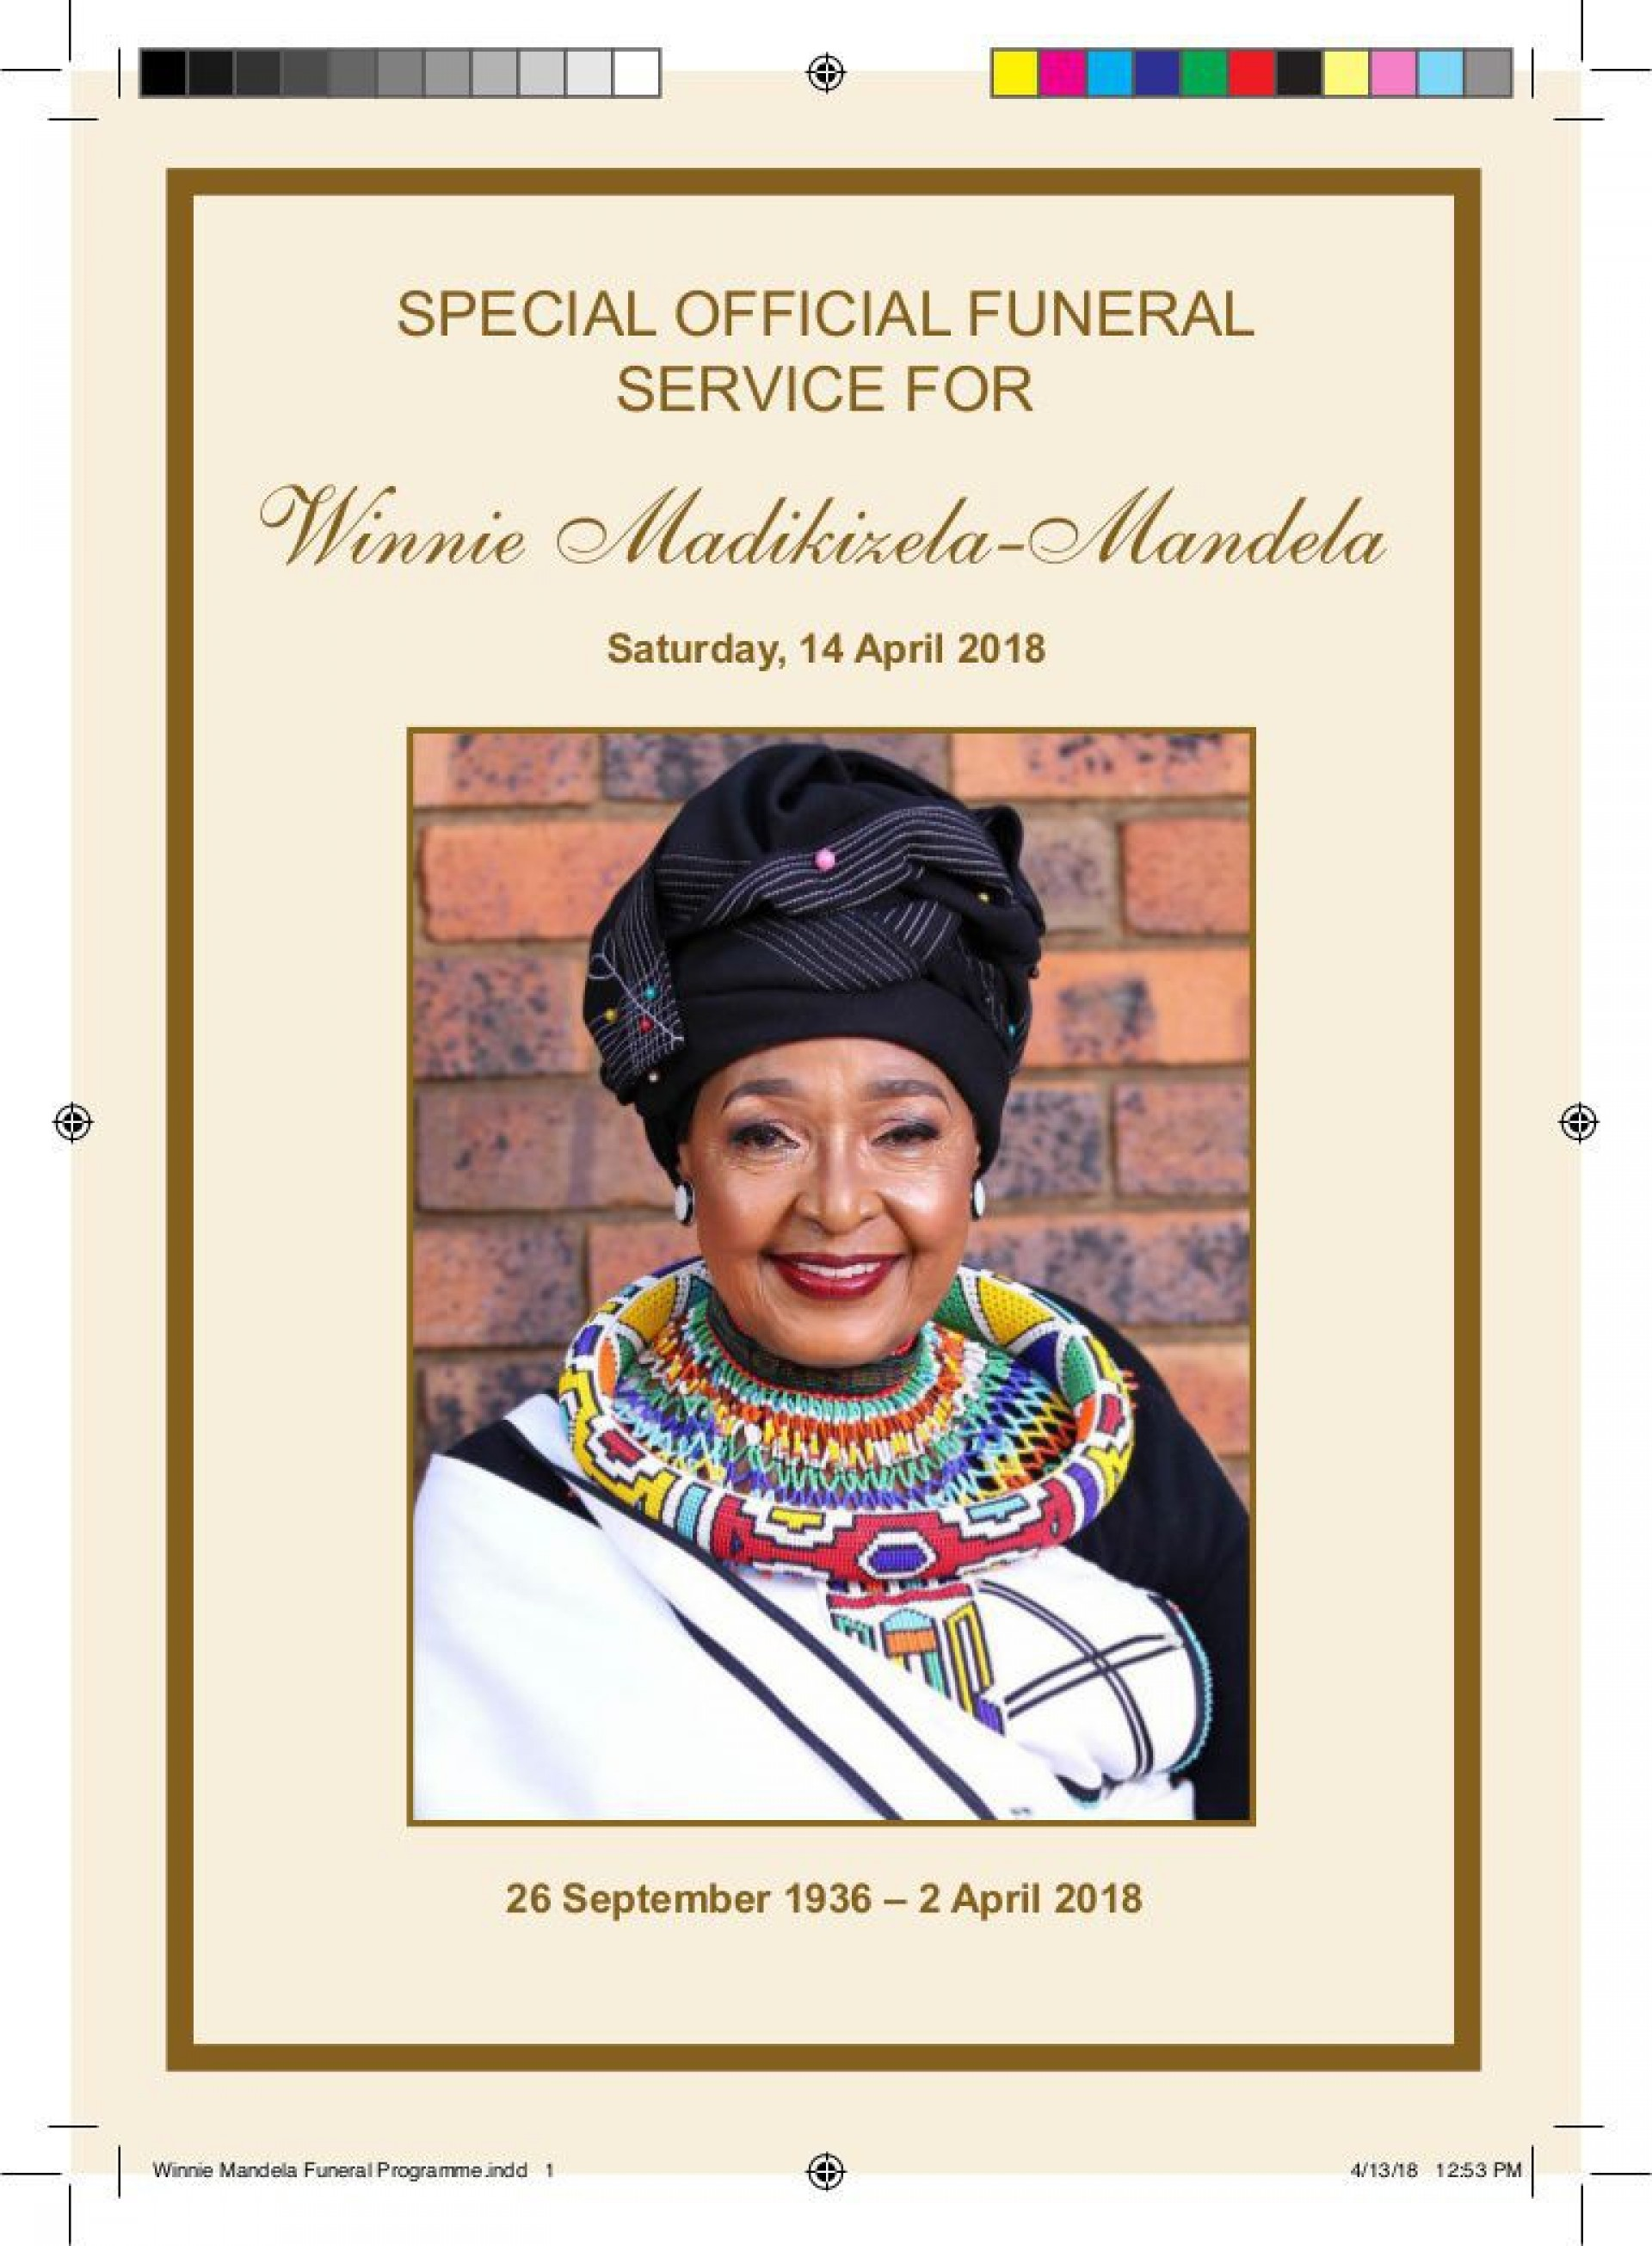 009 Sensational Example Funeral Programme High Resolution  Format Of Program Template Free To Download1920